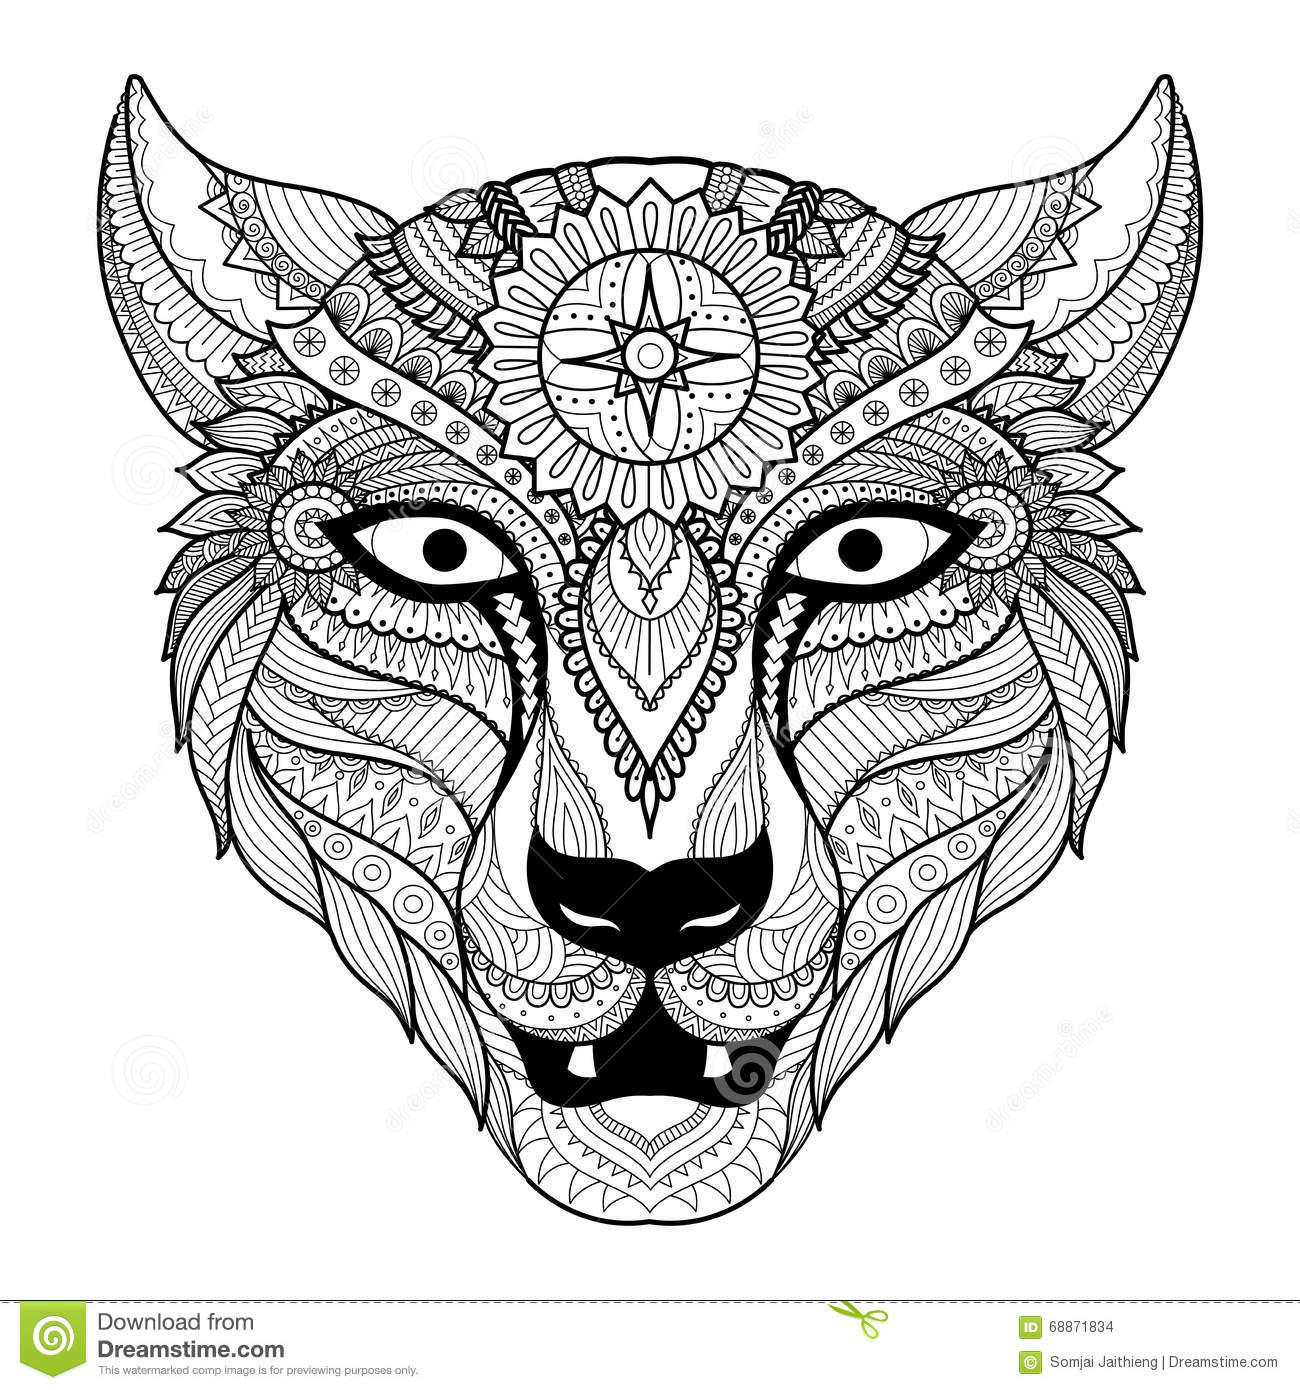 Leopard Line Art Design For Coloring Book For Adult Tattoo T Shirt Design And So On Stock